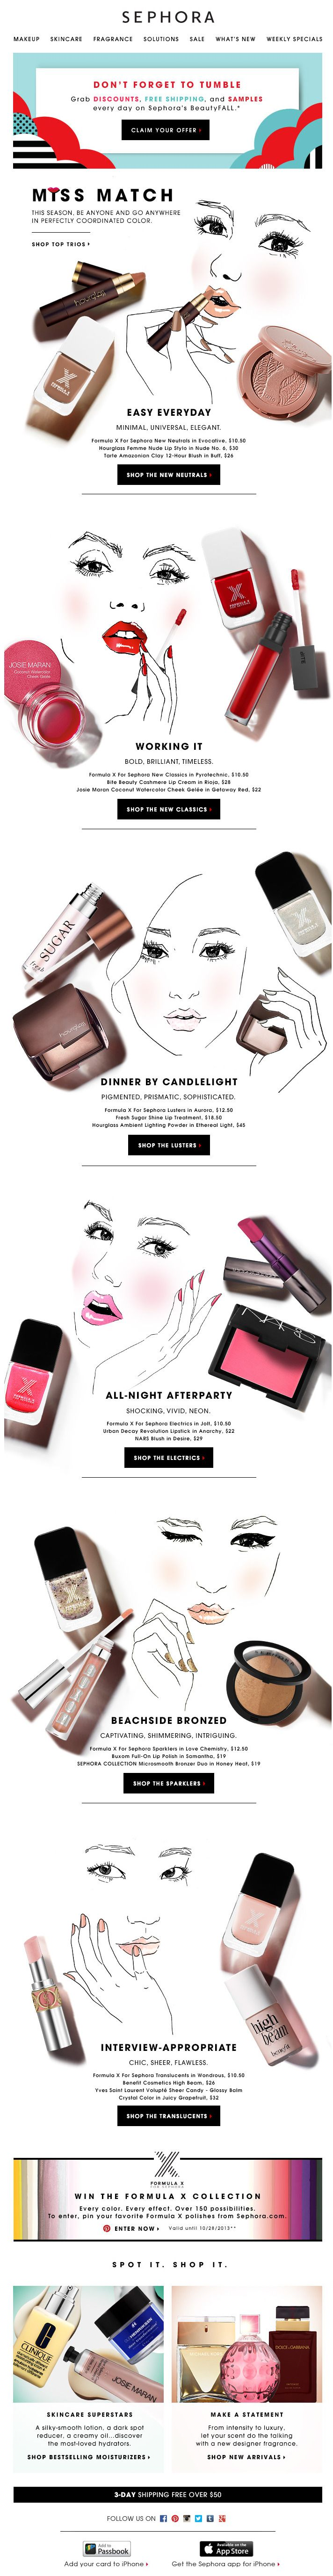 Sephora Beauty 1, 2, 3...liking the face illustrations